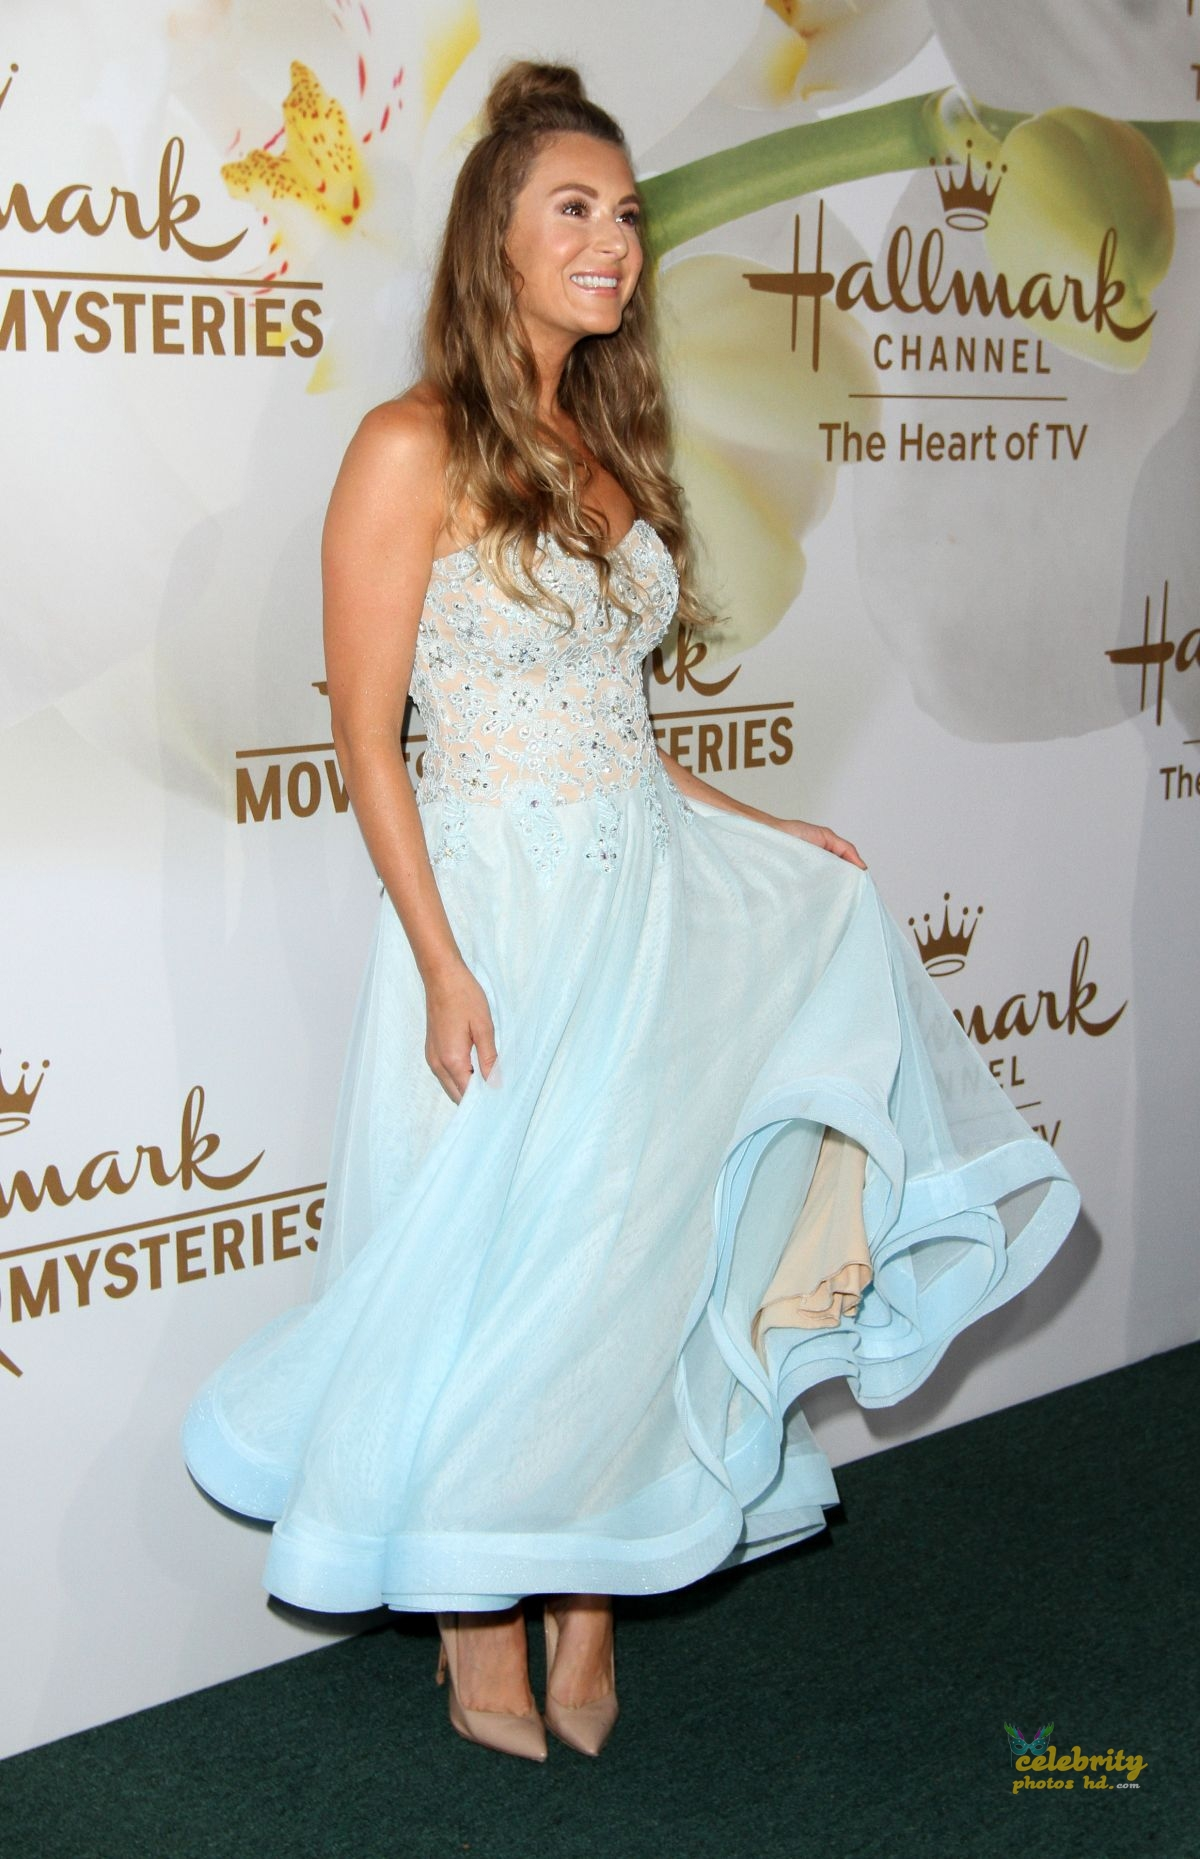 The Hot Beauty of Hollywood Actress Alexa Vega Off Screen Photo's (4)